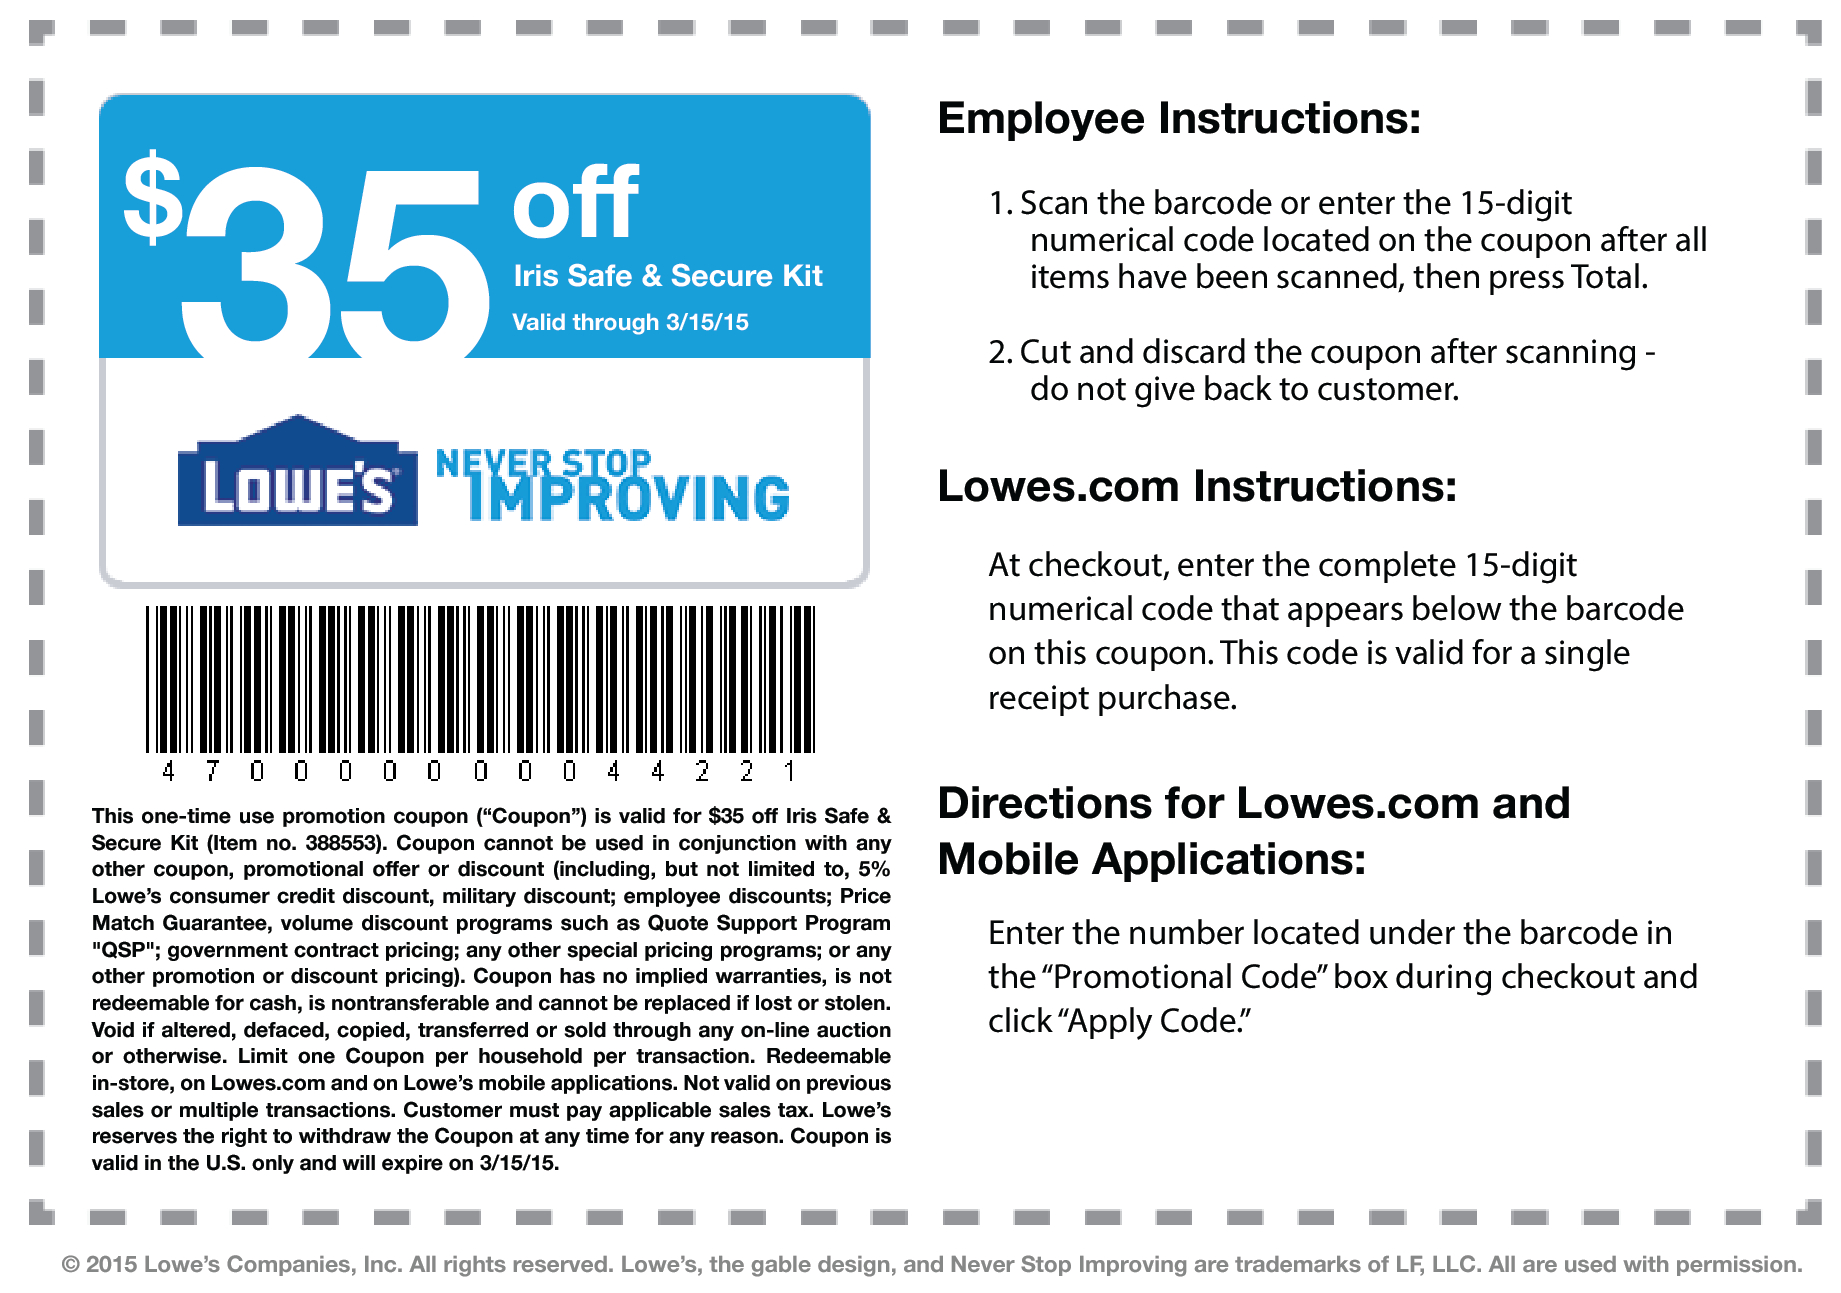 Lowes Coupons – Download & Print - Free Printable Lowes Coupons